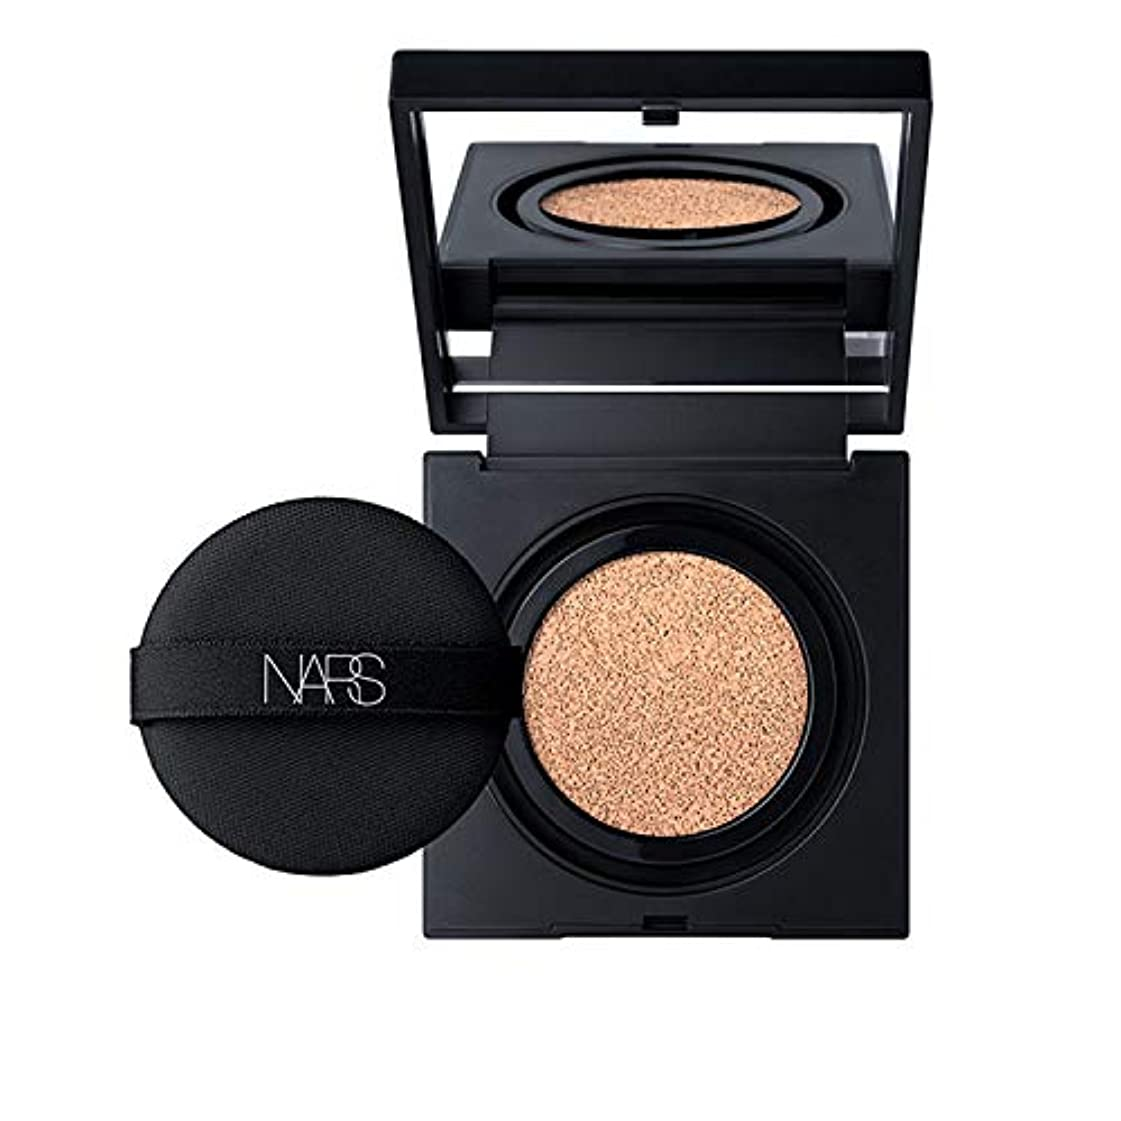 Nars(ナーズ) Natural Radiant Longwear Cushion Foundation 12g # Mont Blanc